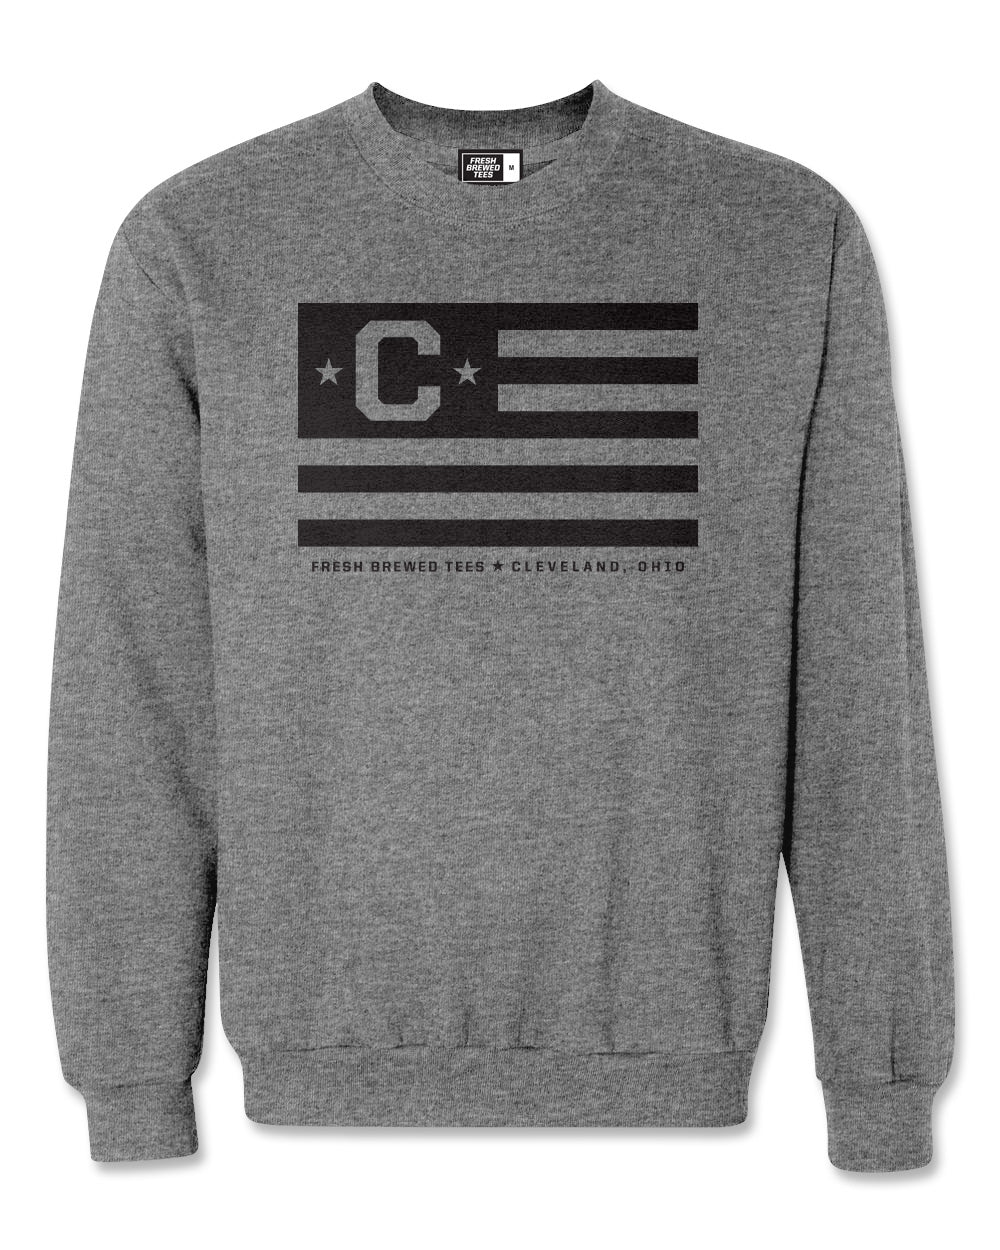 C Flag Gunmetal Heather Crewneck Sweatshirt